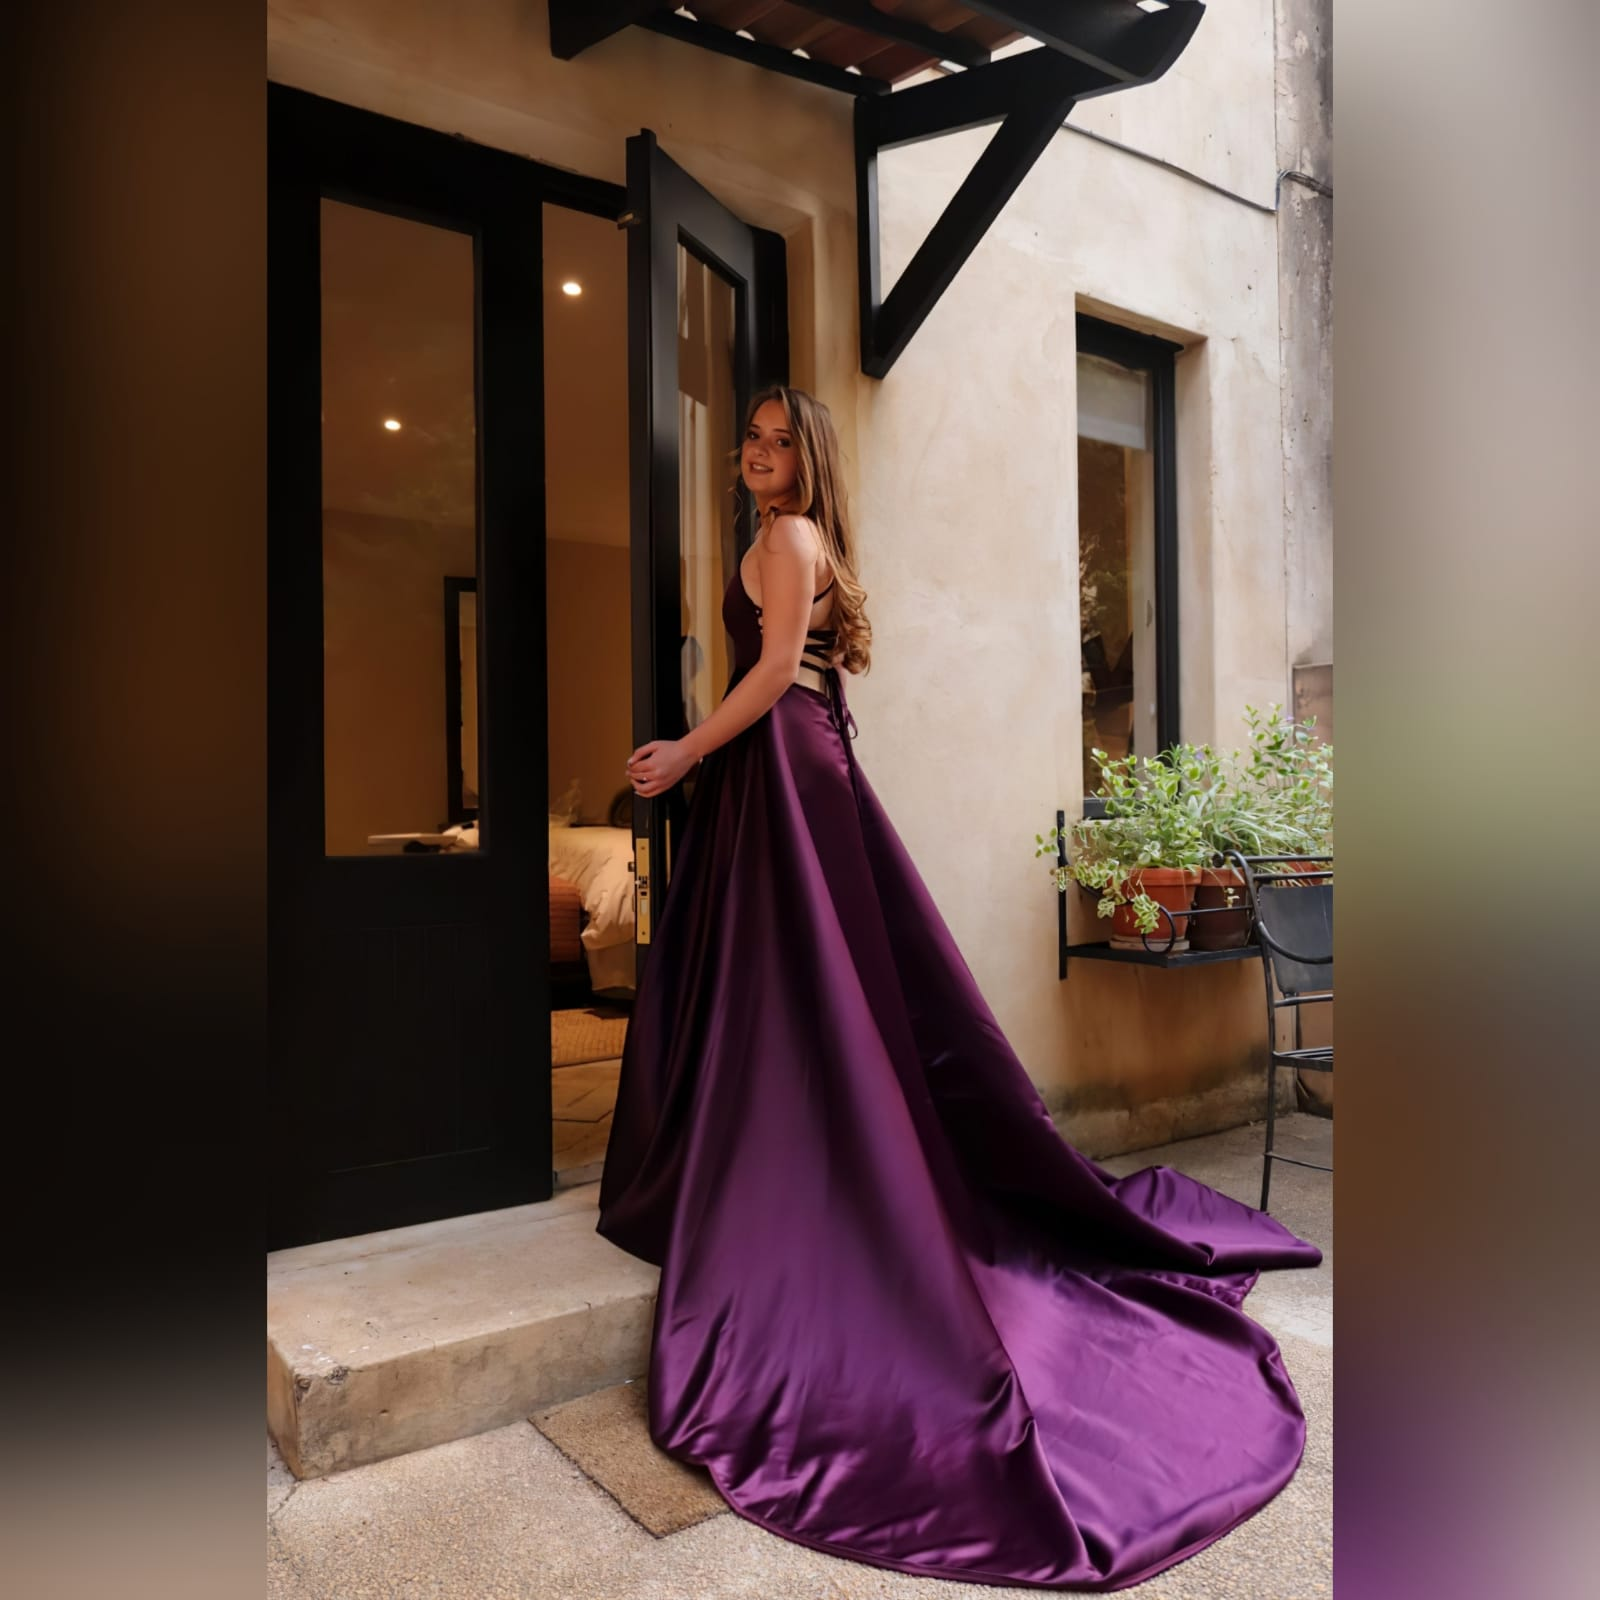 Plum long flowy prom dress with a plunging neckline 1 plum long flowy prom dress with a plunging neckline and a lace up open back with a slit and train.